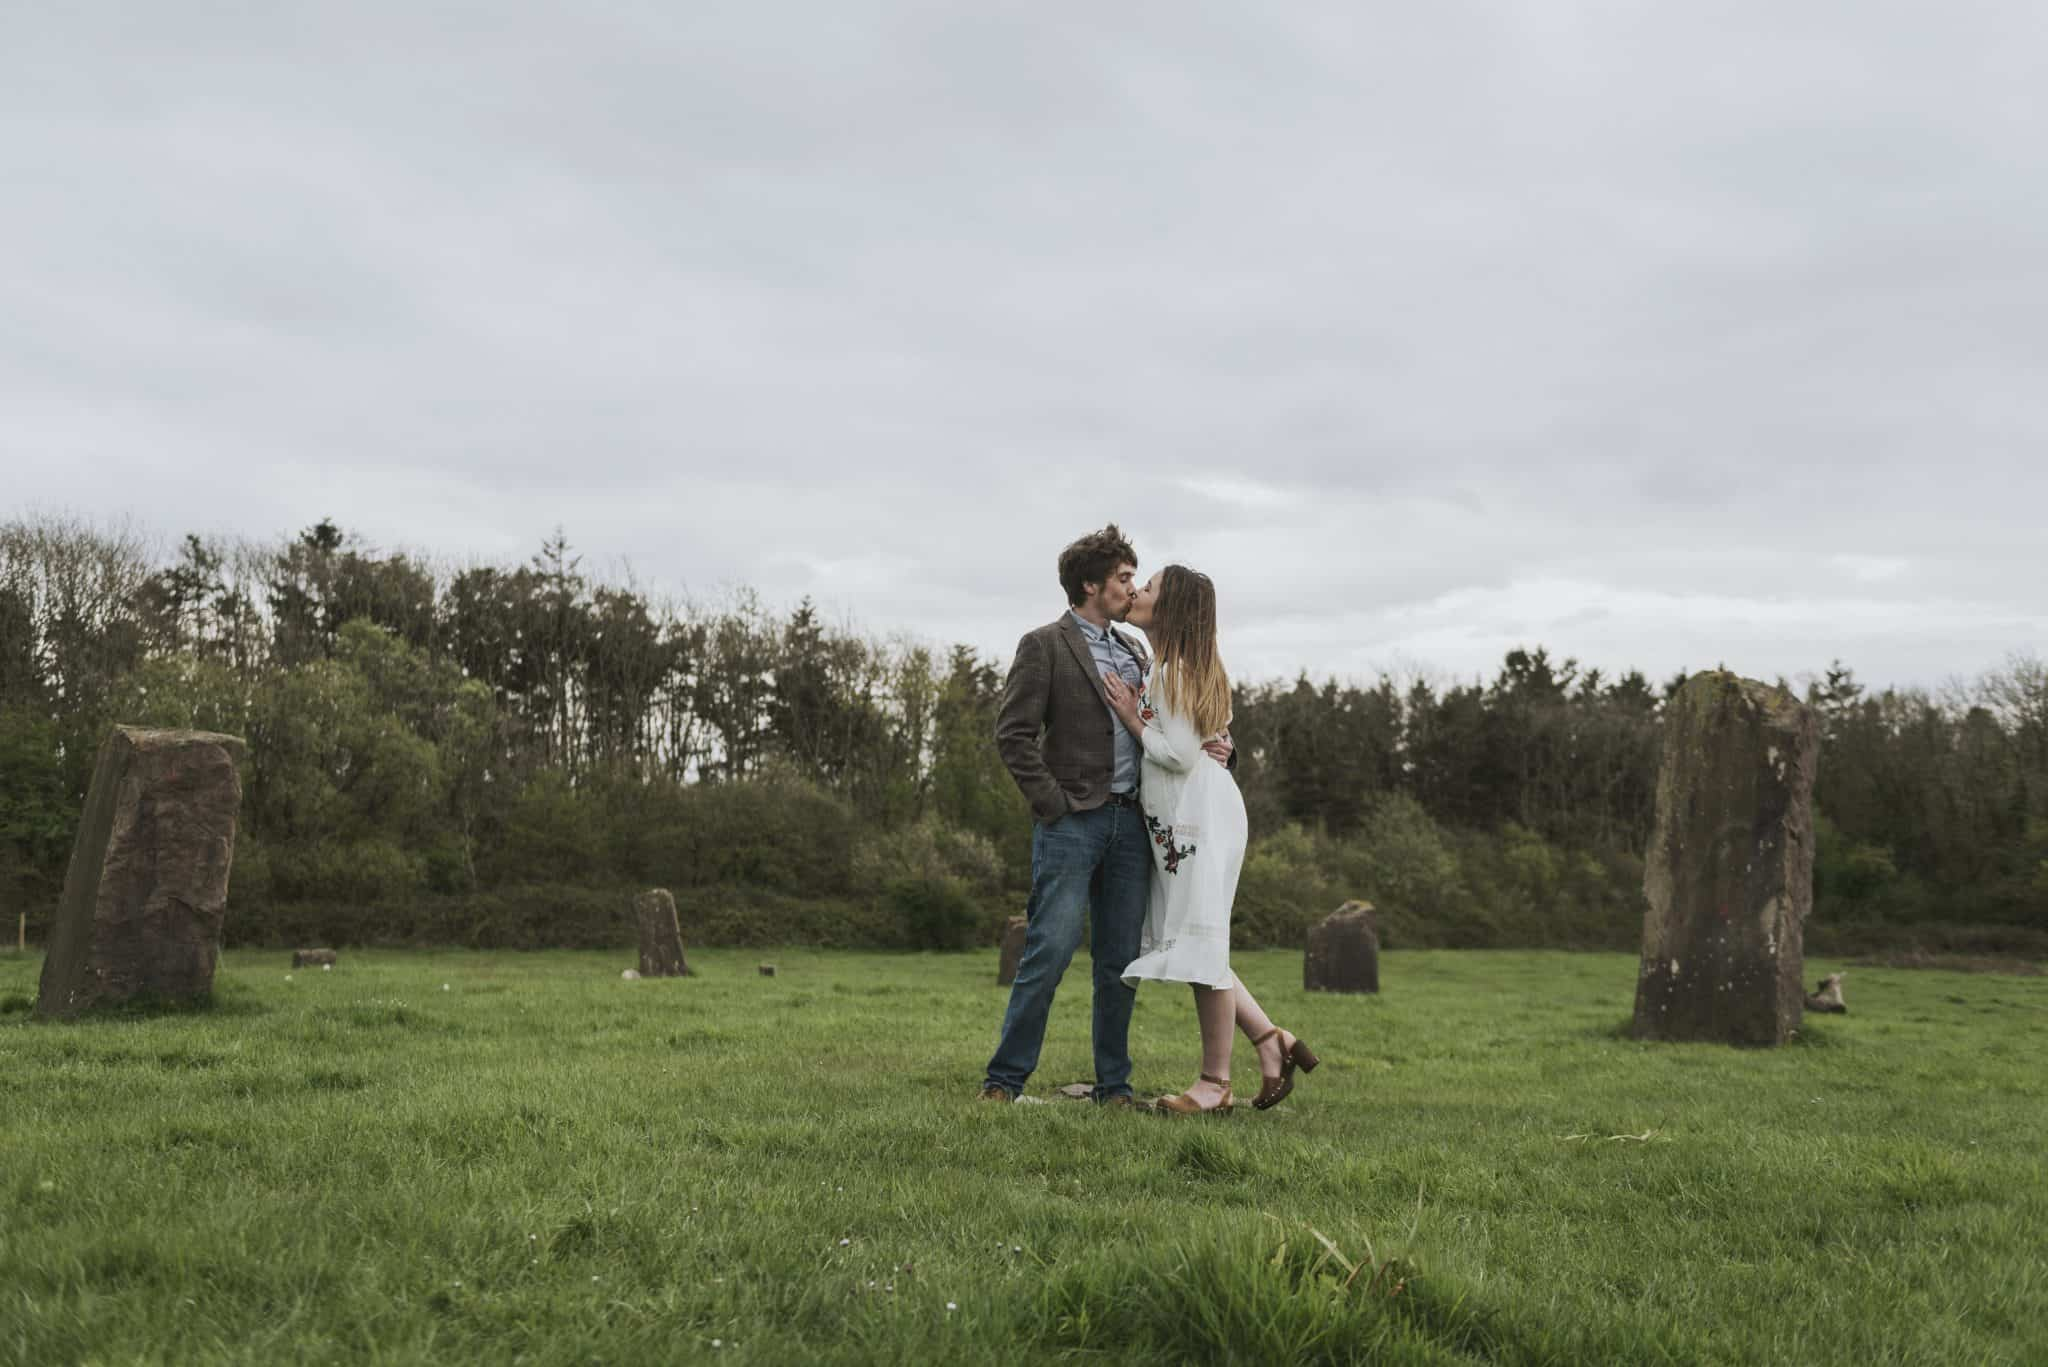 coed weddings pre wedding shoot ~ Couple kissing in a field surrounded by standing stones